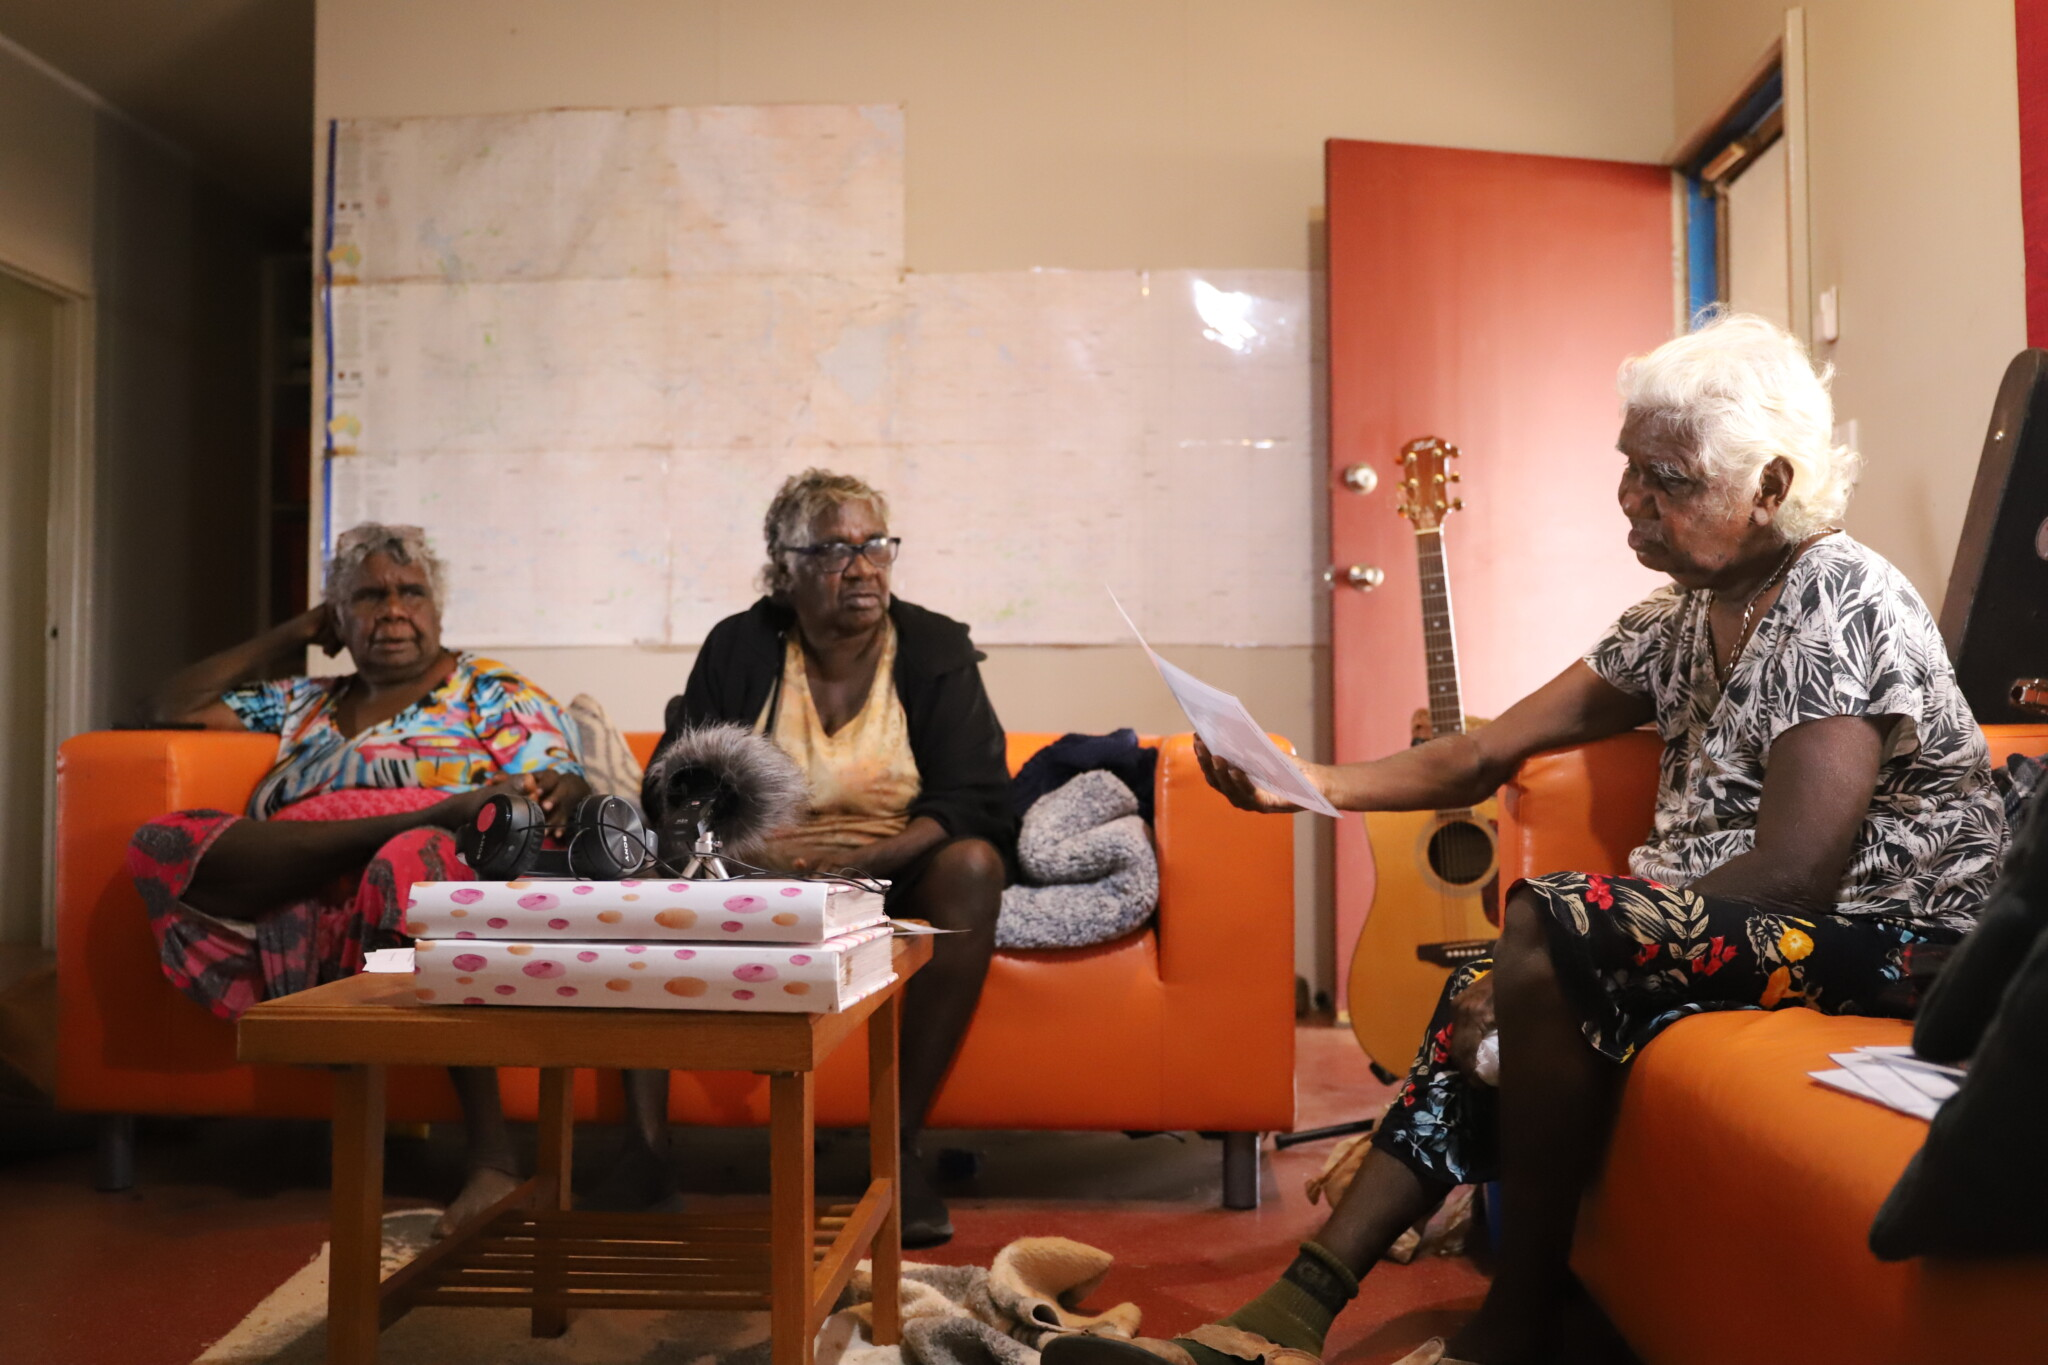 Three indigenous women sit on couches, sharing stories and photos with each other